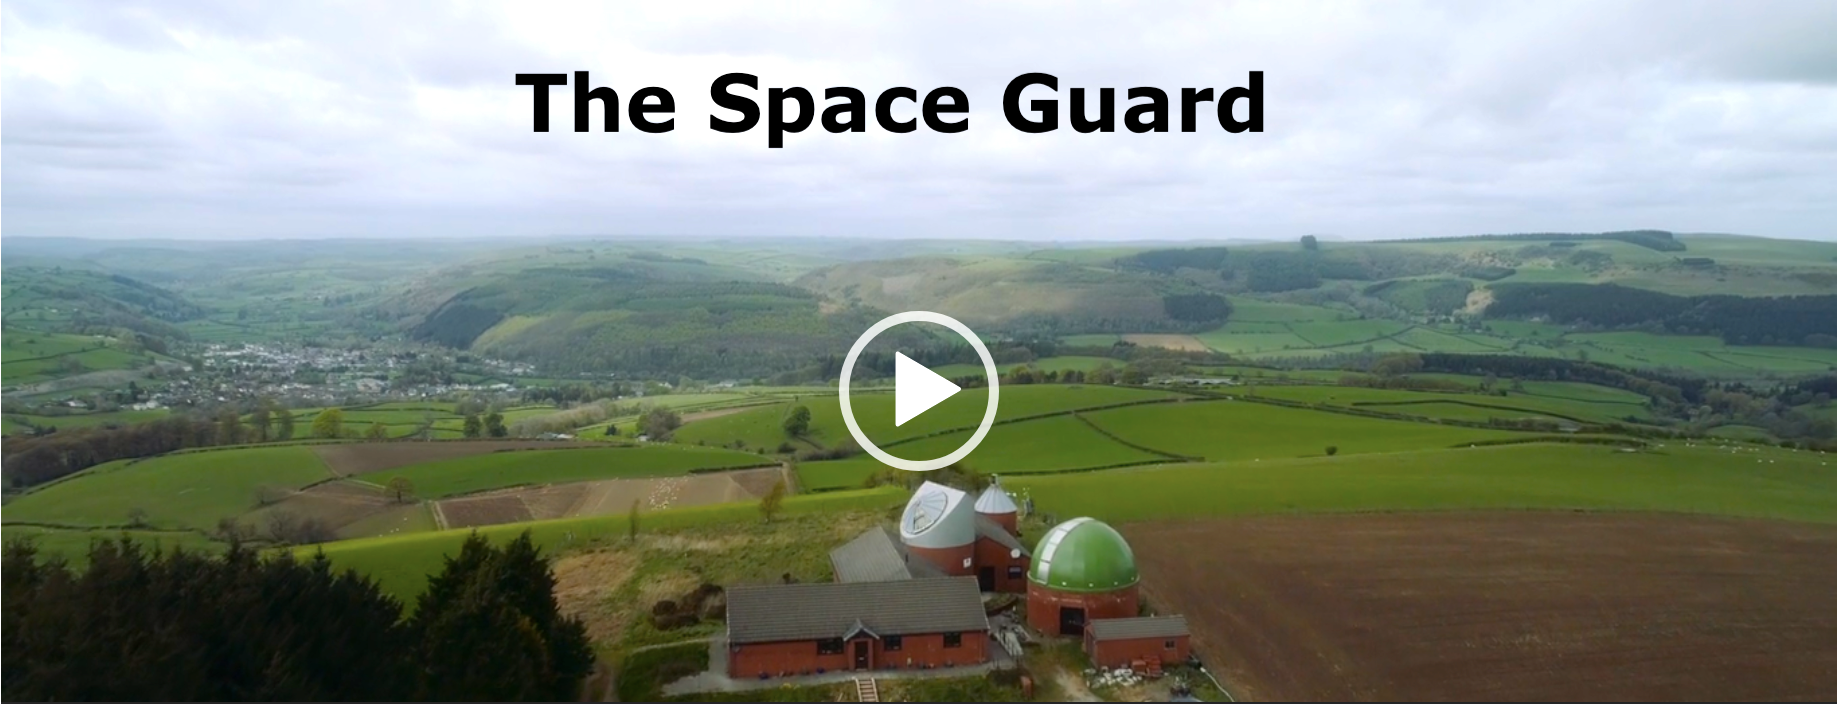 spaceguard-view